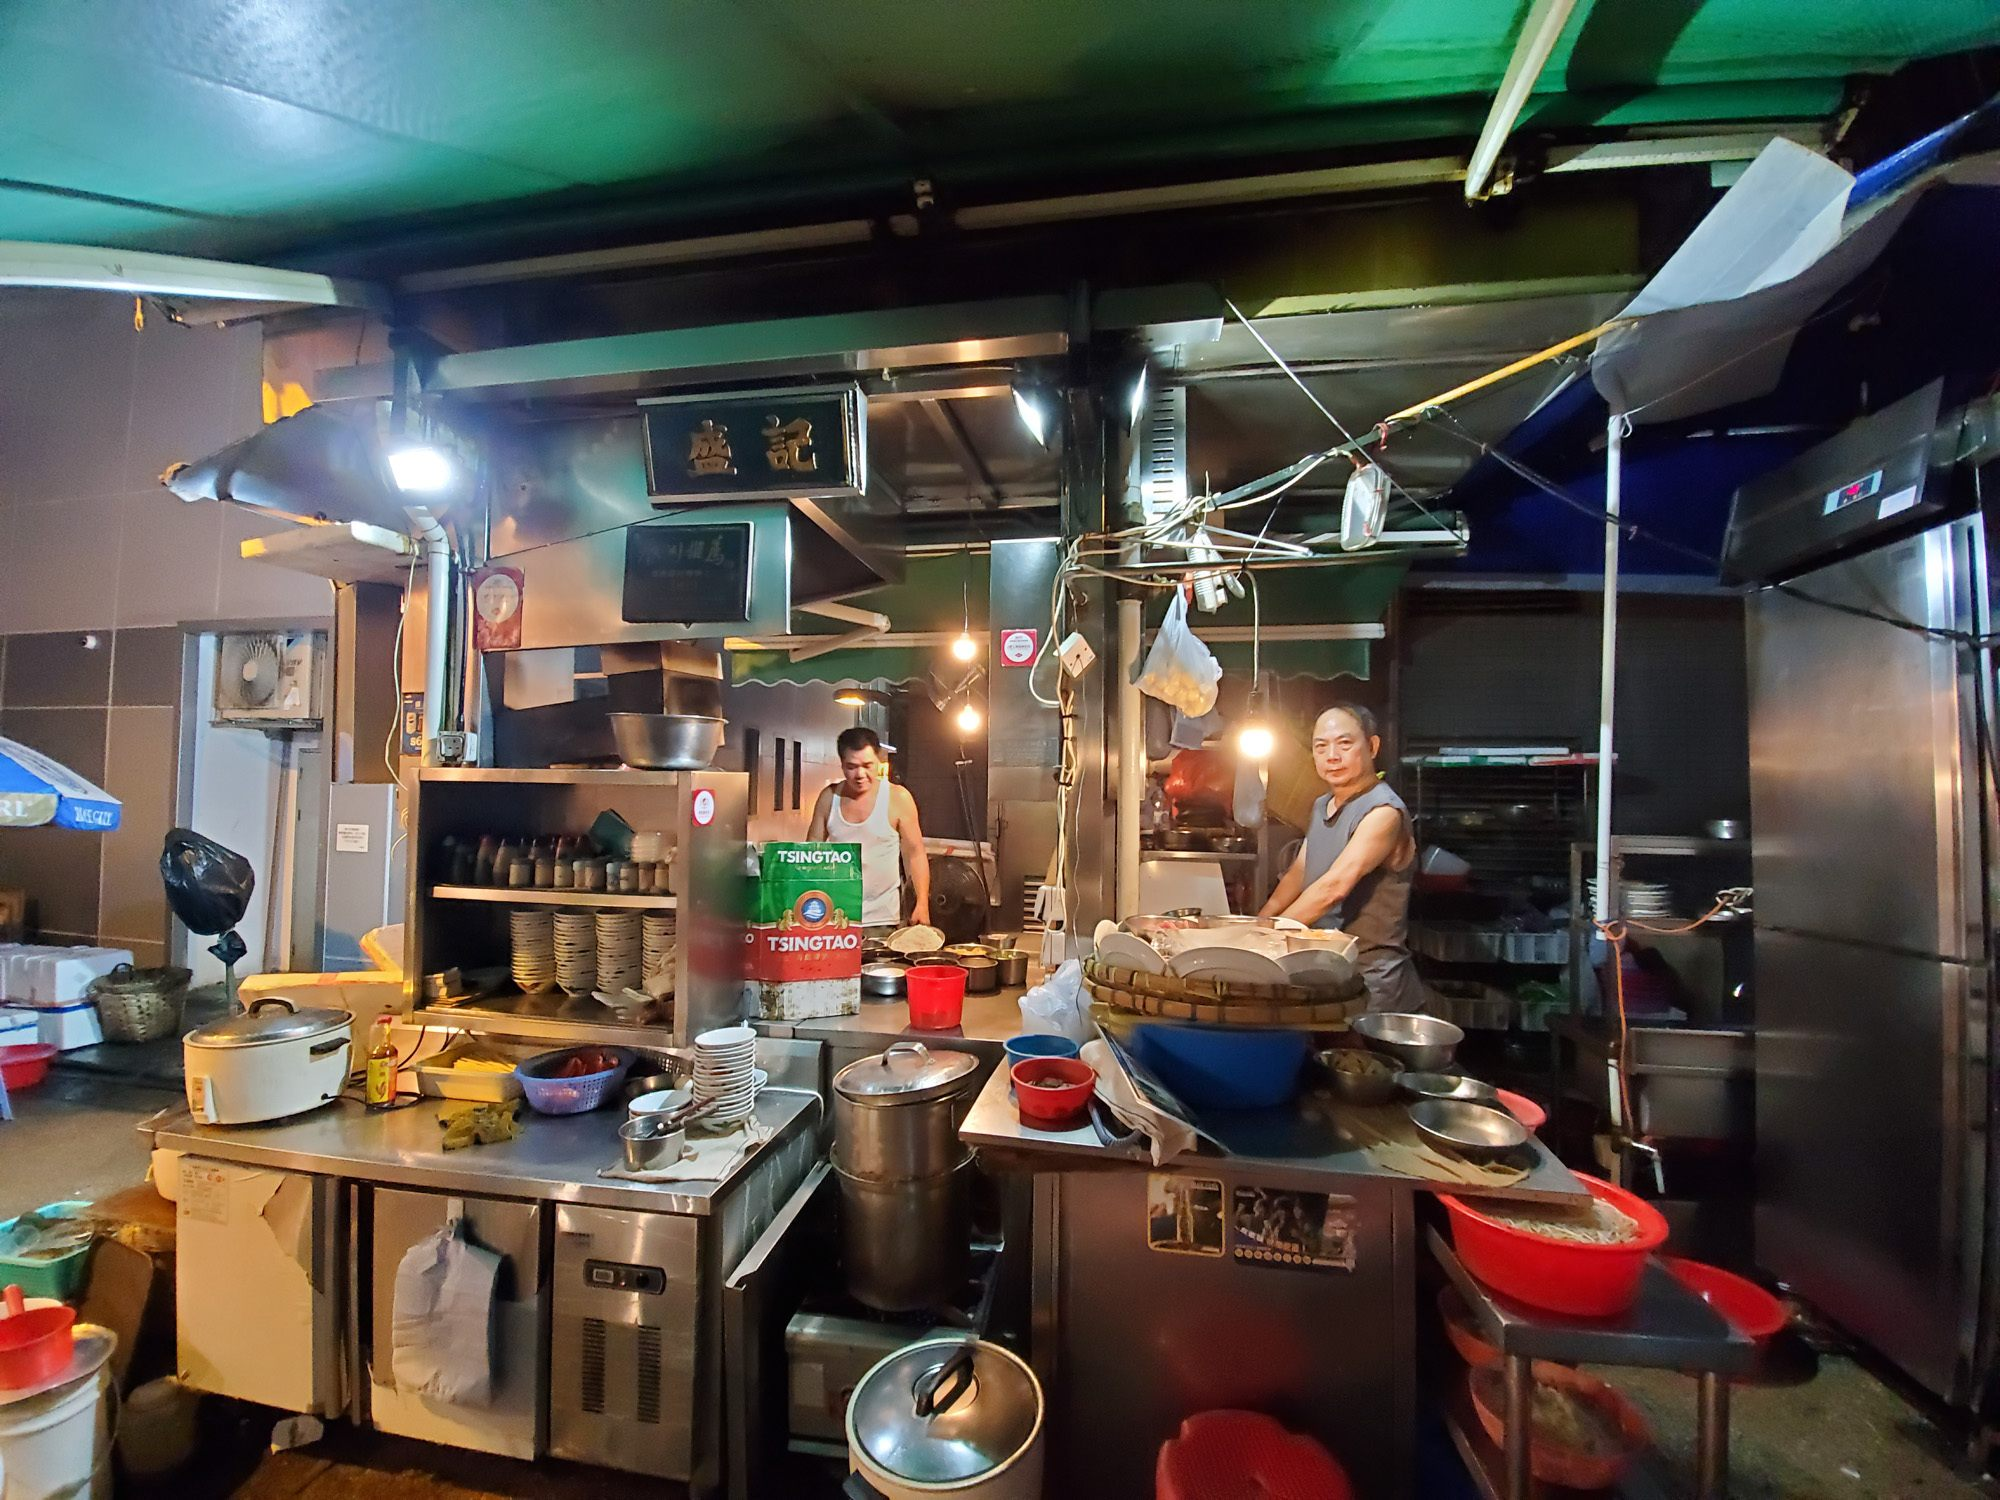 sing kee is one of the famous restaurants in central hong kong